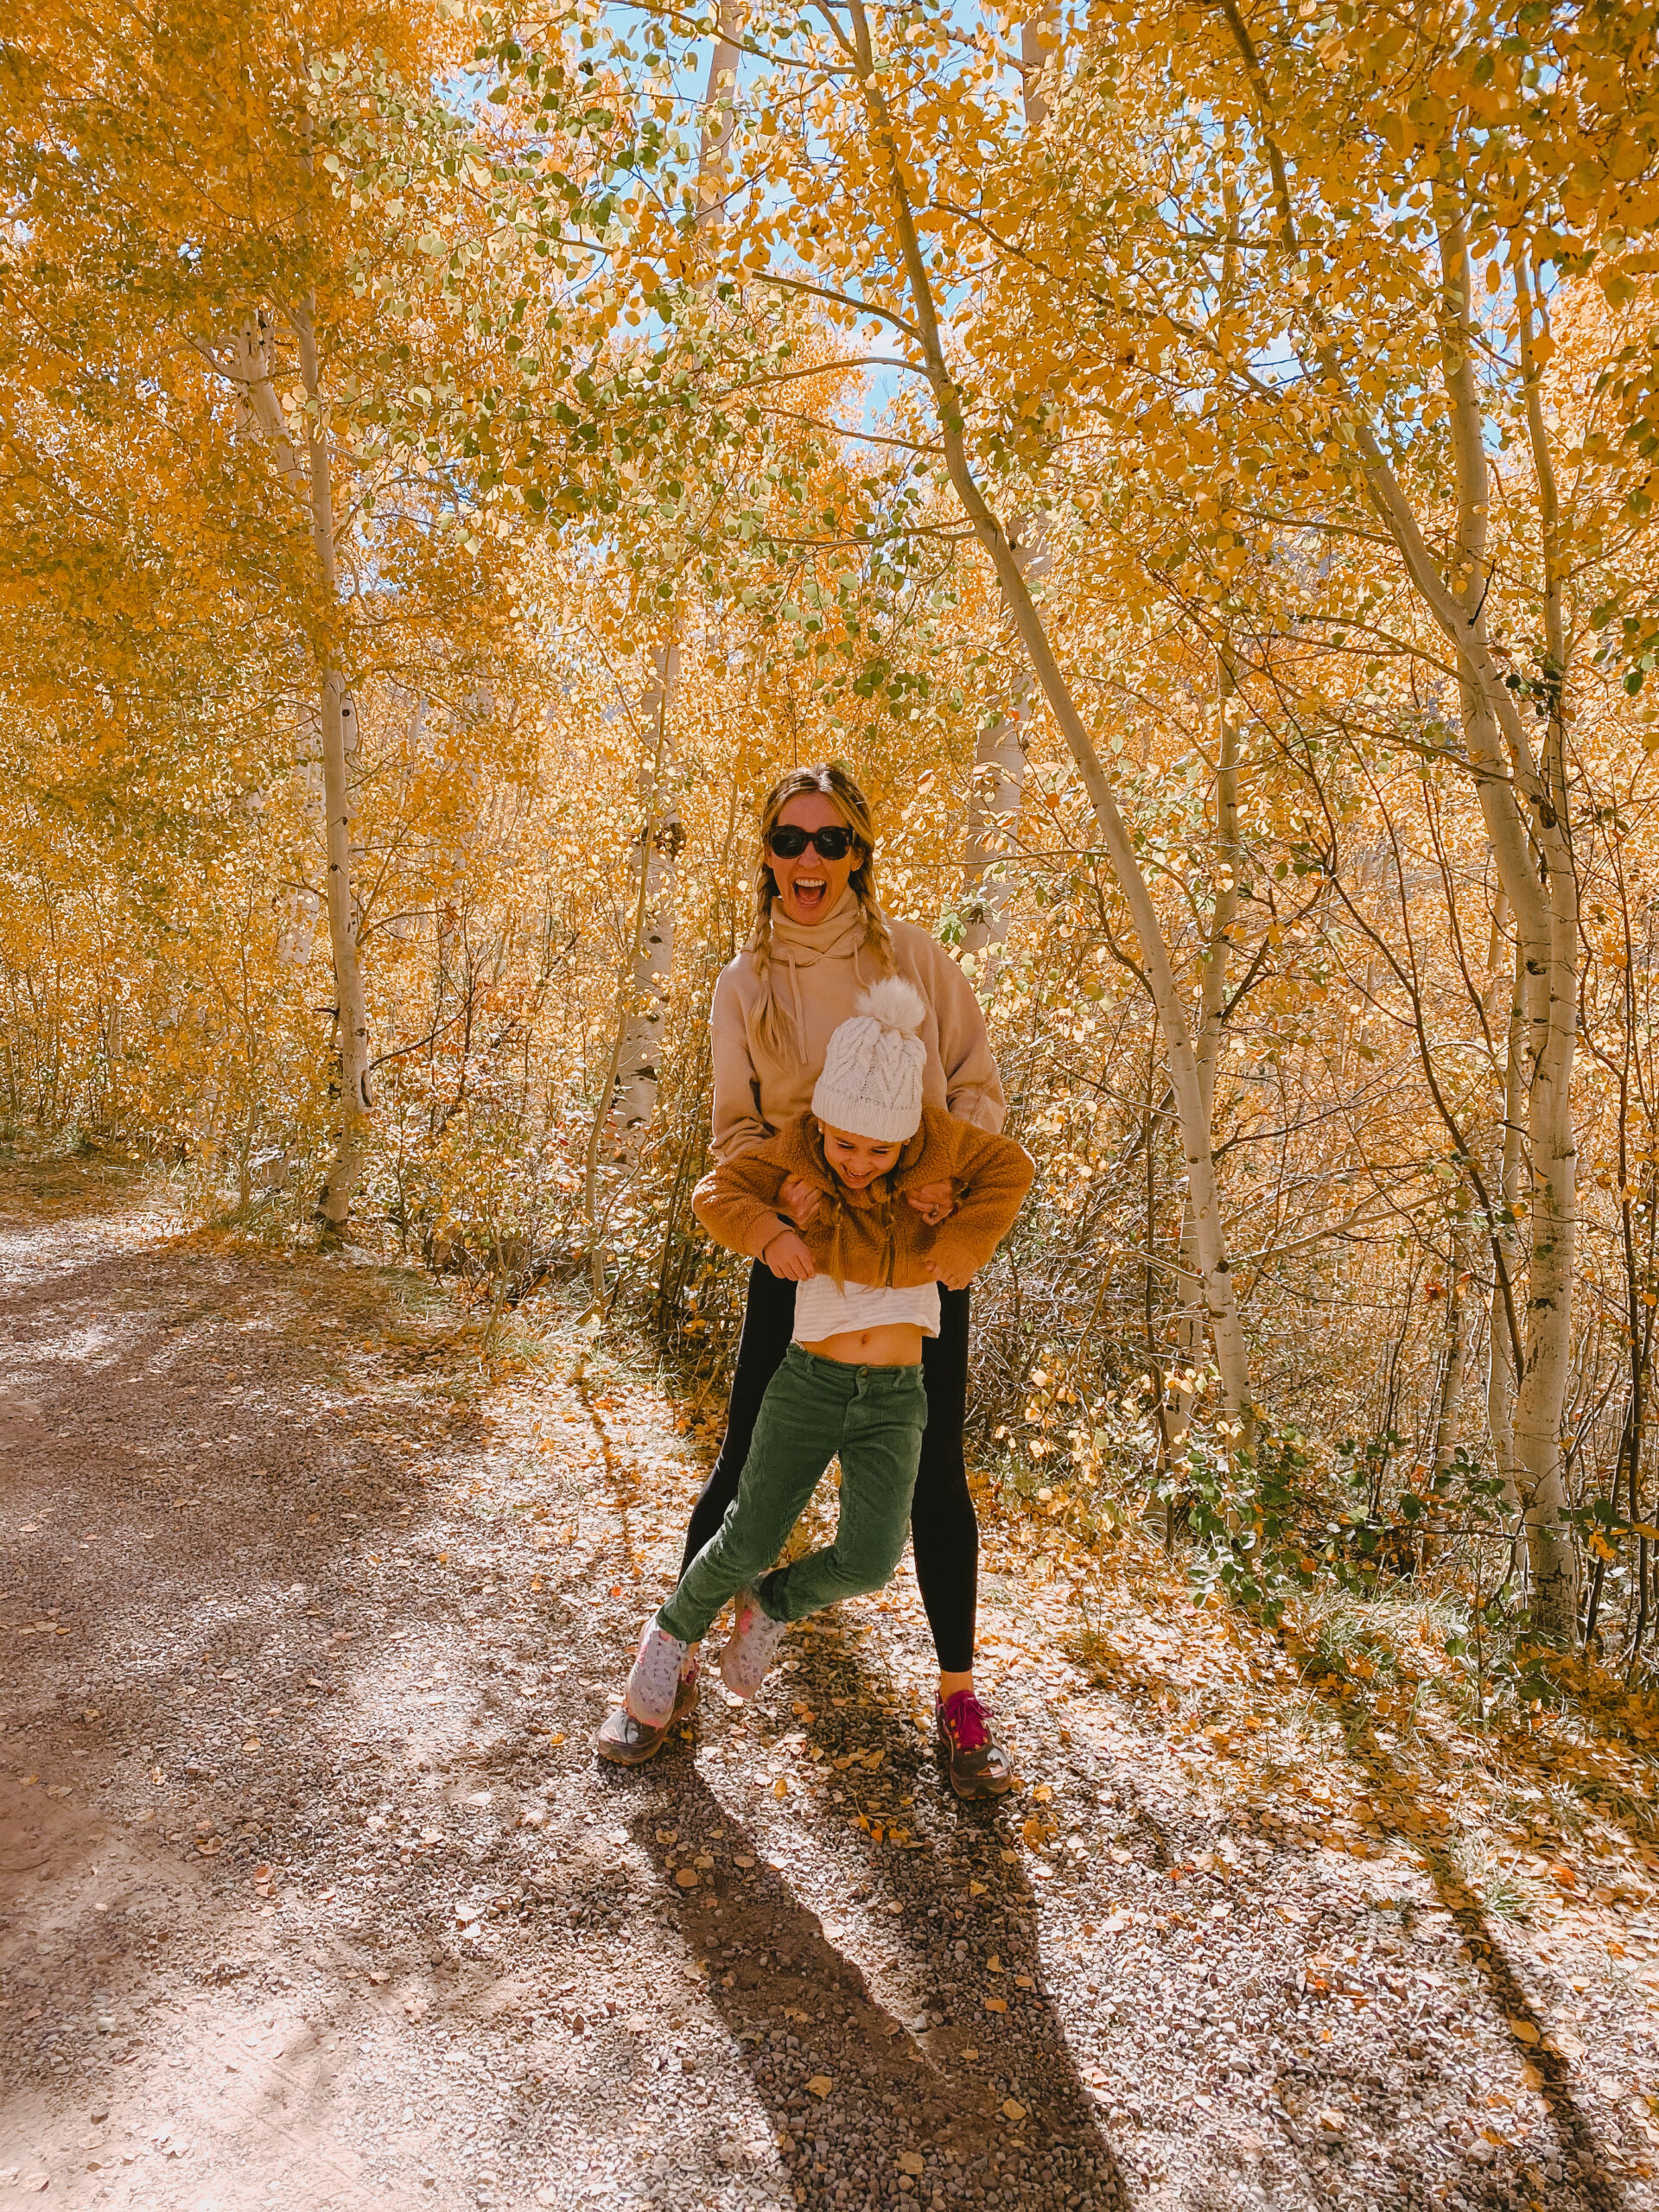 fall amongst the trees with my baby girl! #fallinaspen #aspentrees #colorado